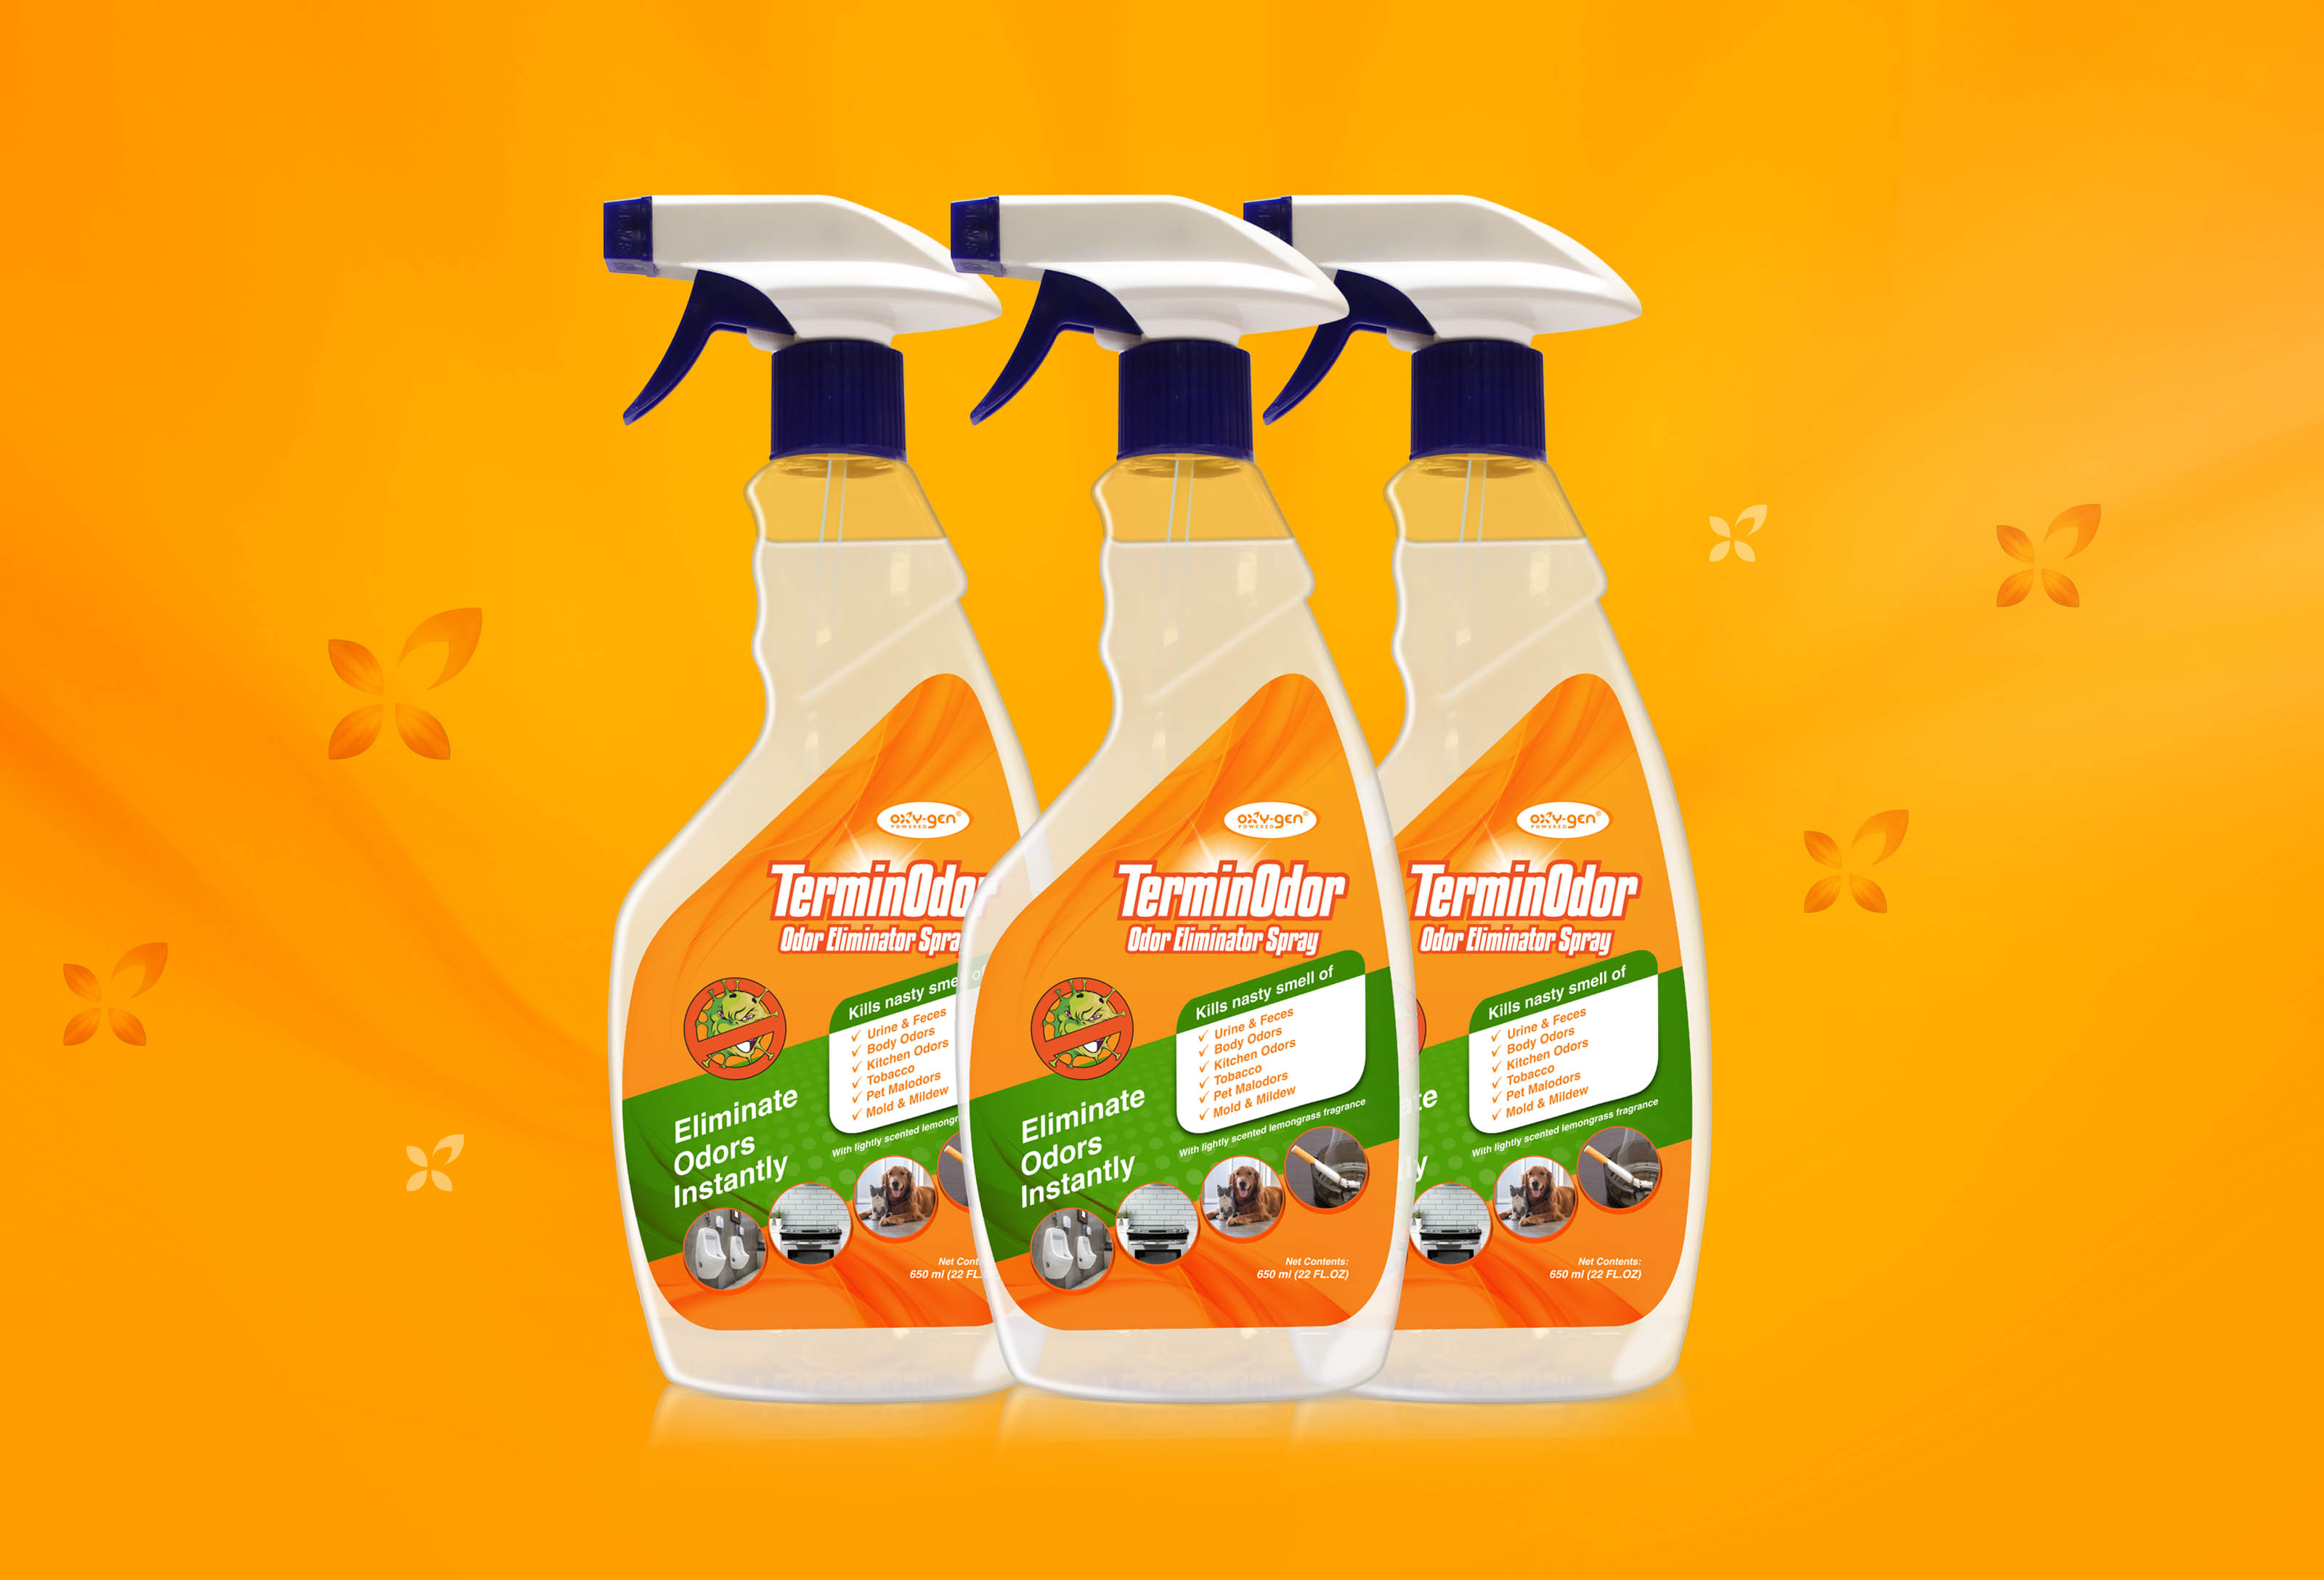 Attack Odors with New TerminOdor™ Spray from Oxy-Gen Powered